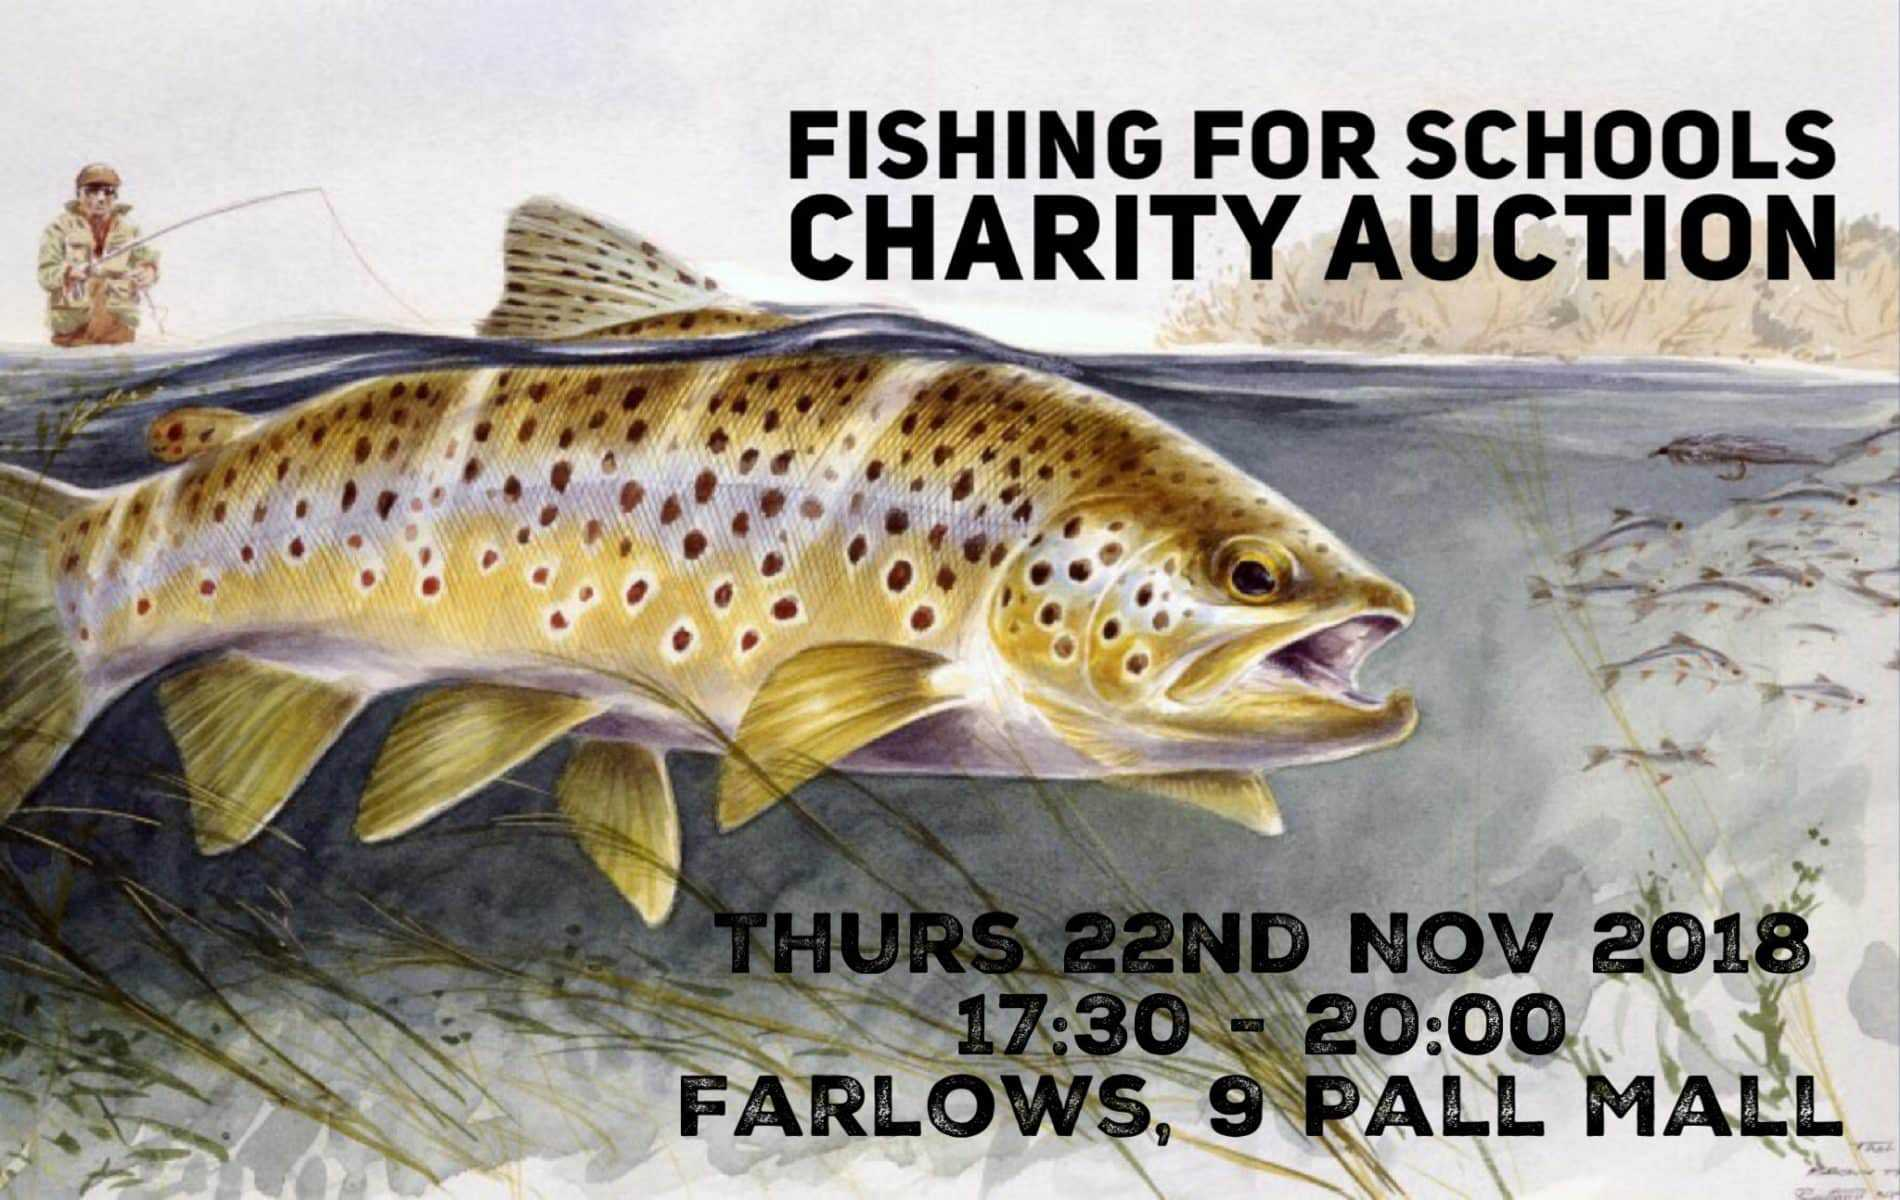 Fishing for Schools charity 'Grand Fundraising Auction' – 22nd November 2018